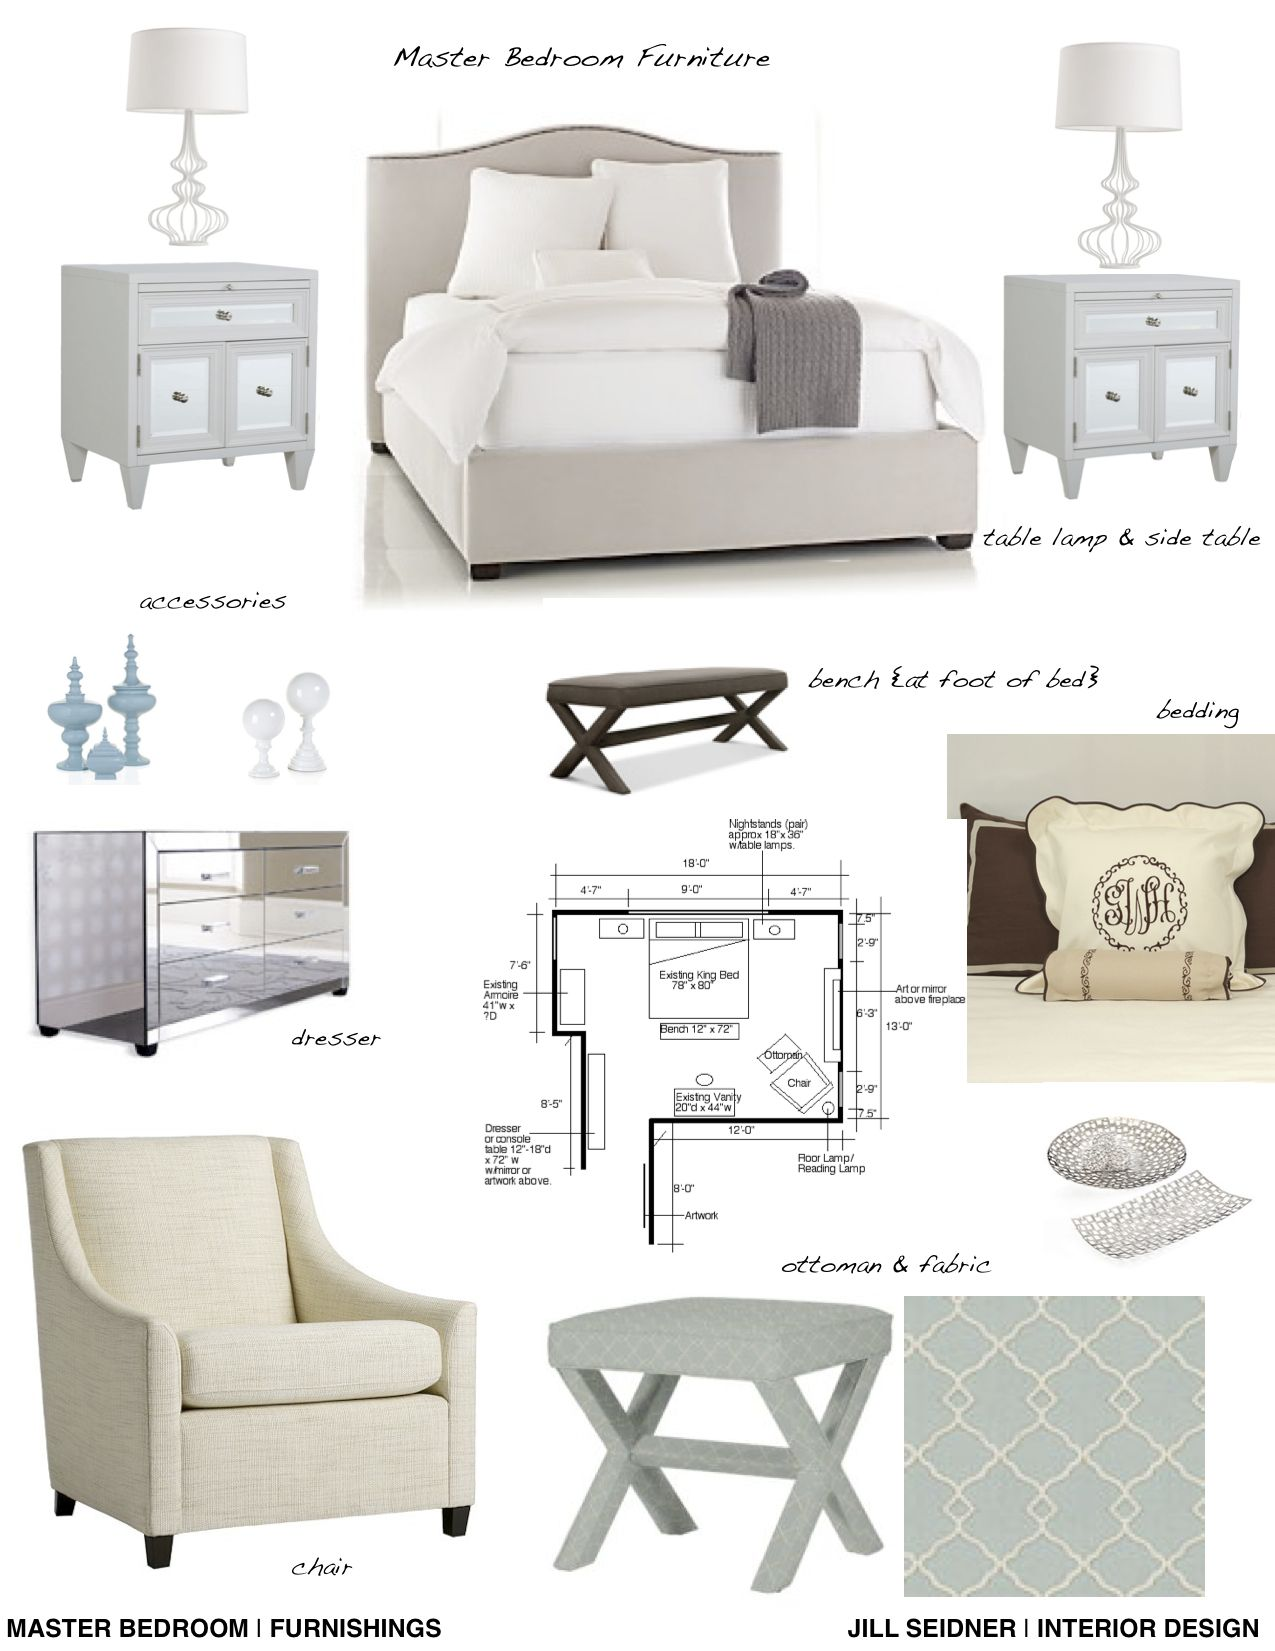 Beautiful Interior Design Concept Board With Jill Seidner Interior Design  Concept Board For Boat Project